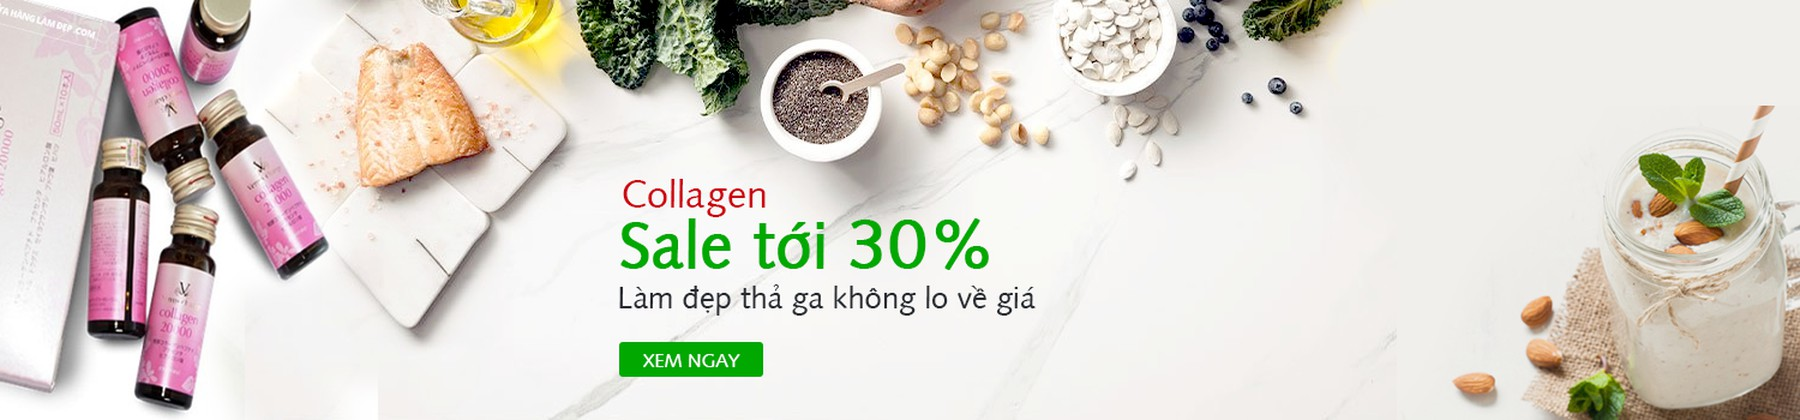 Collagen sale tới 30%